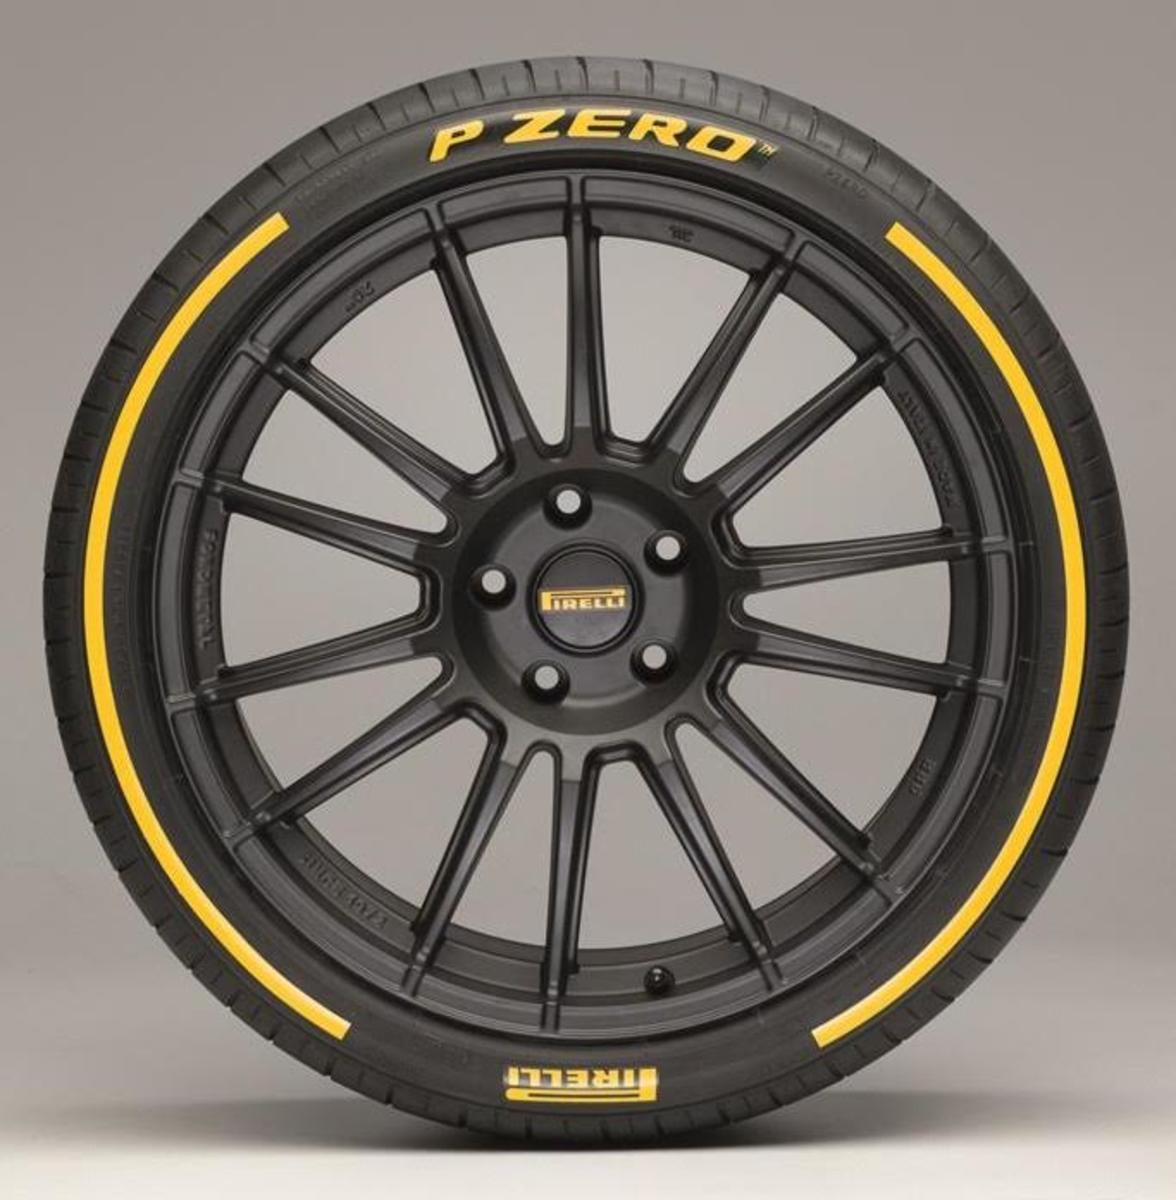 Pirelli releases their P Zero in a variety of colors